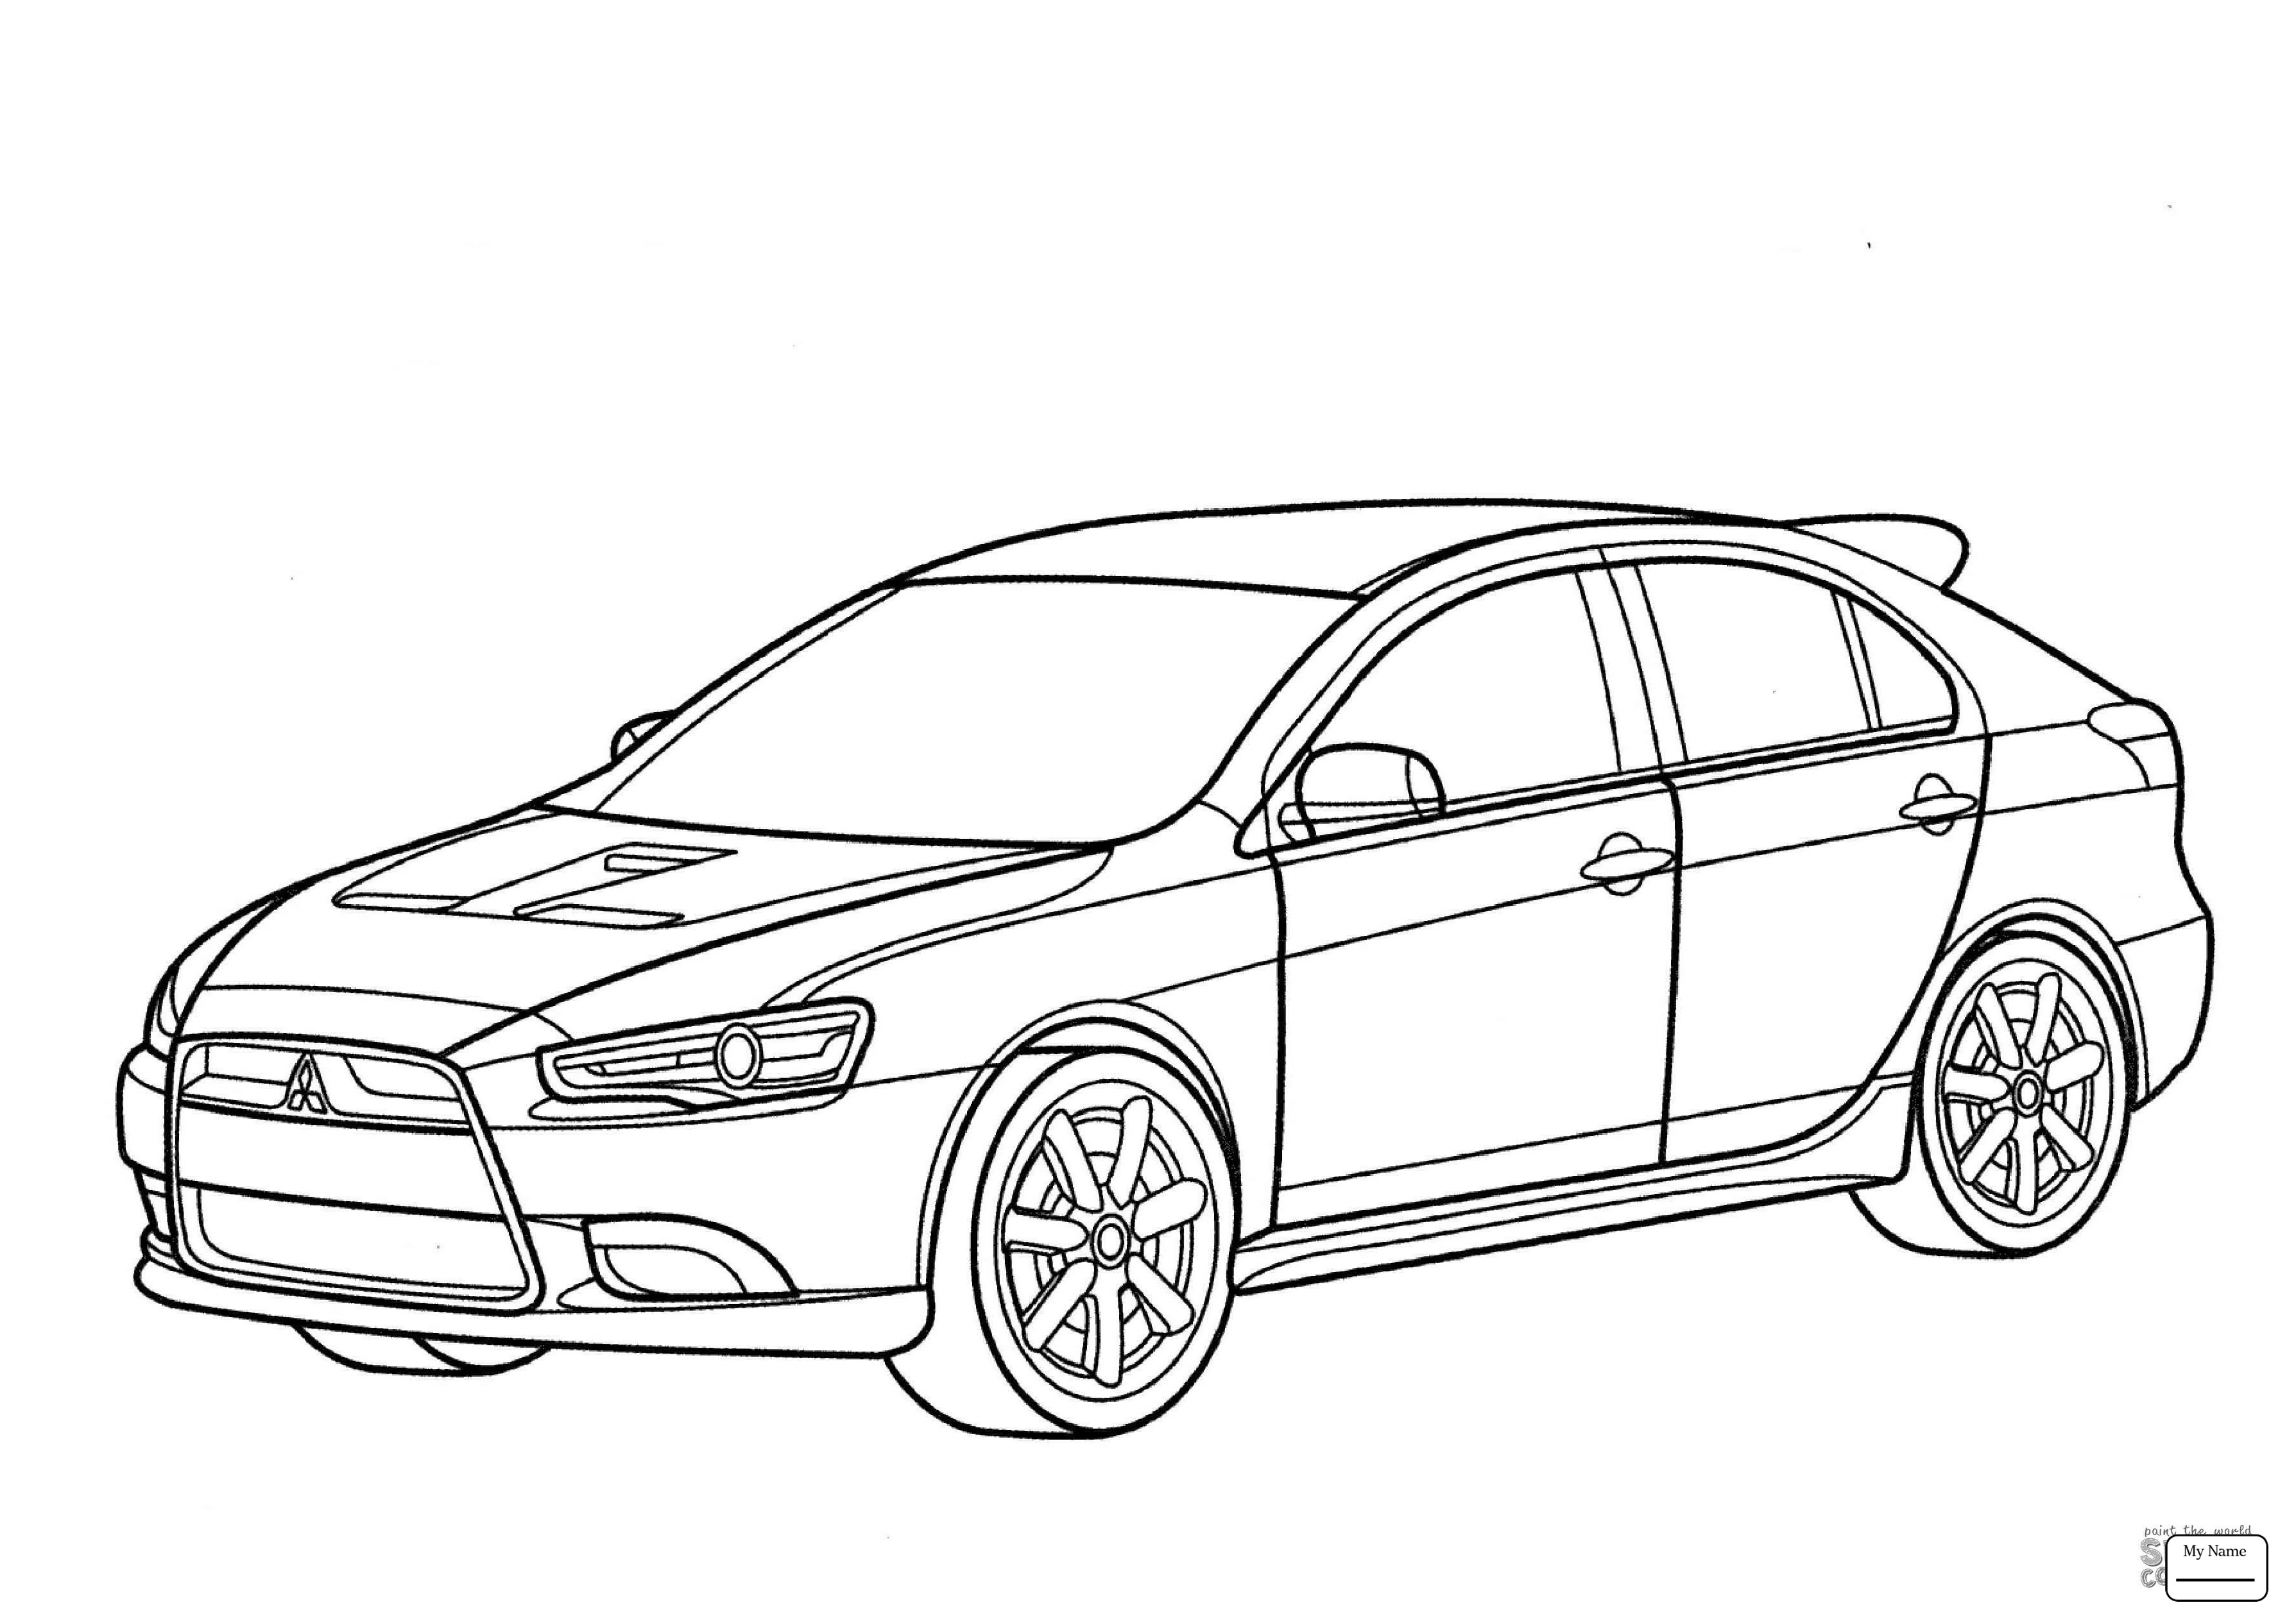 Supercars Gallery: Mitsubishi Eclipse Drawing